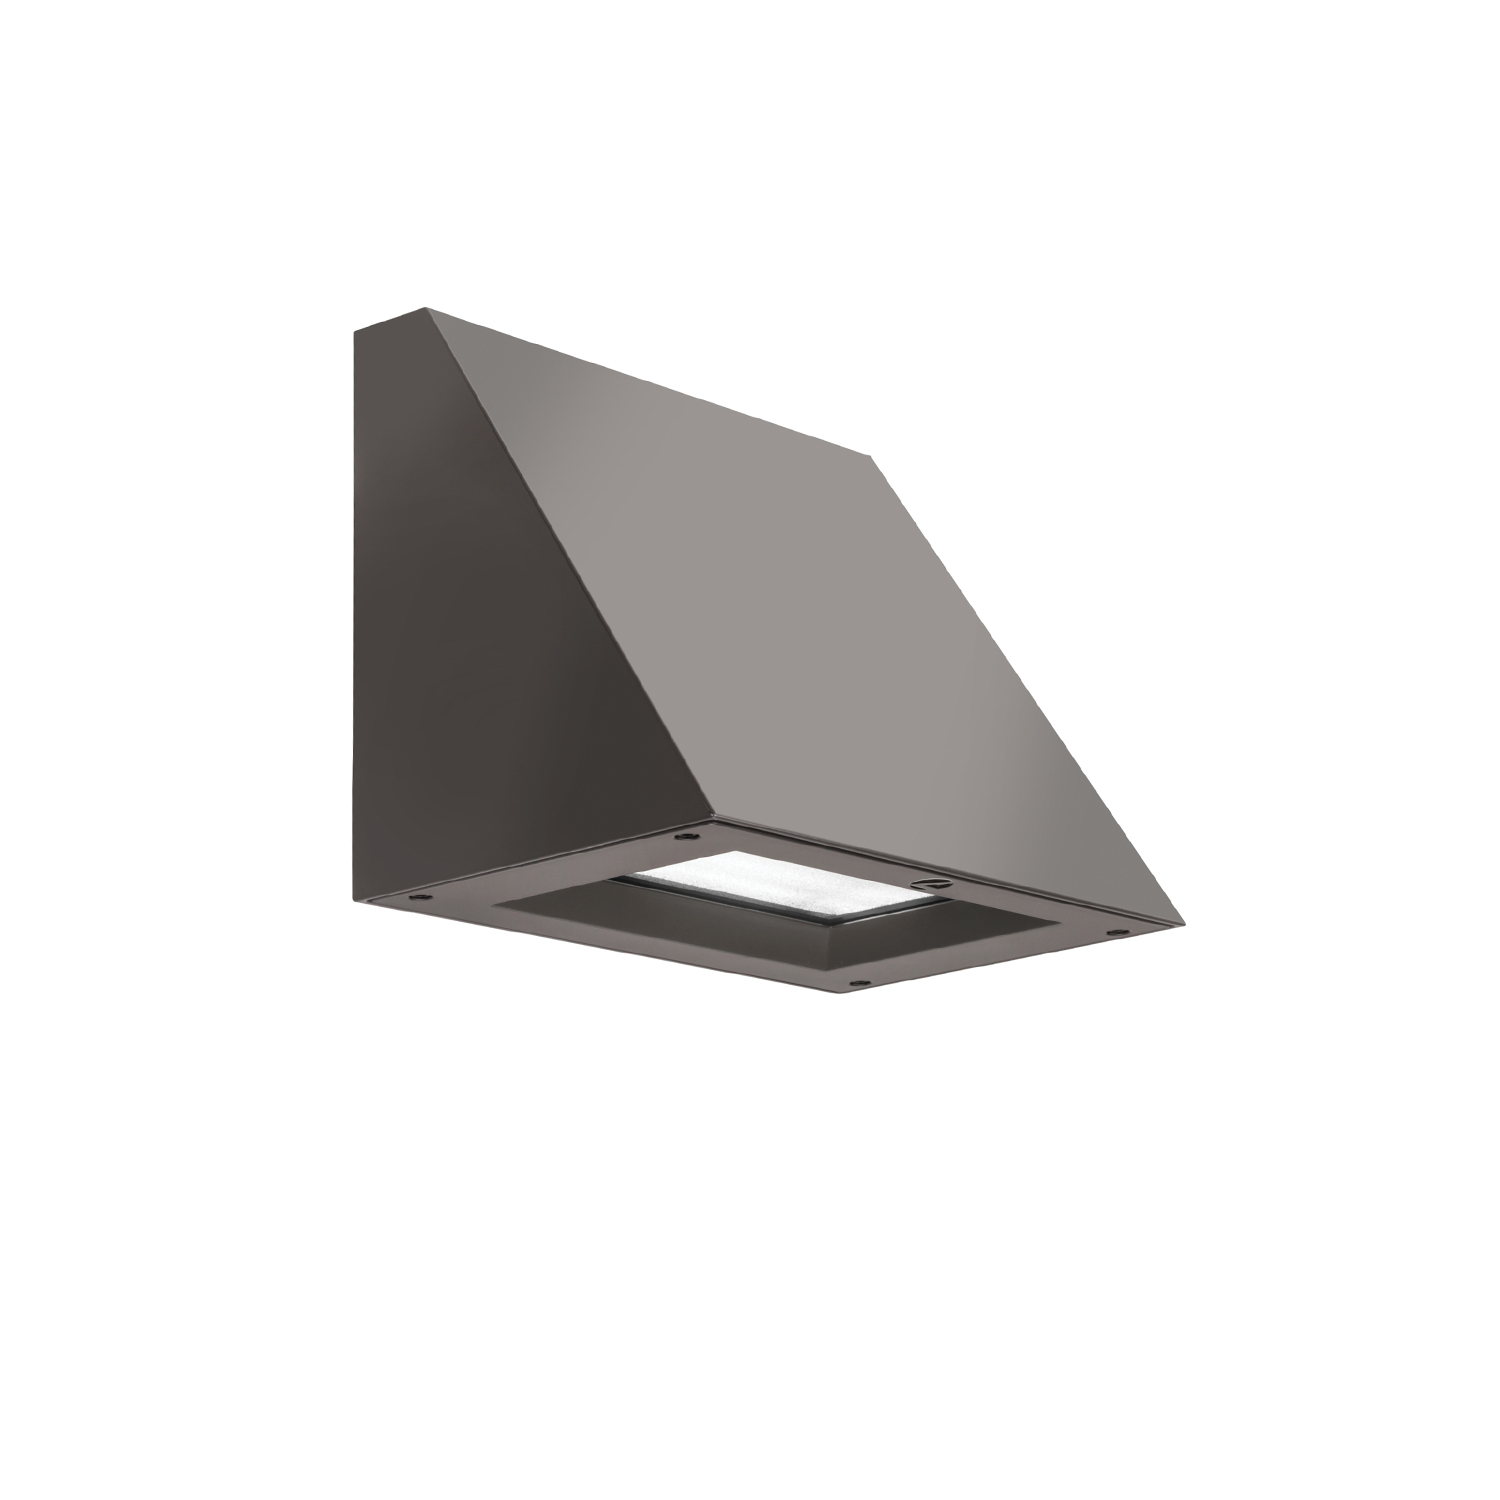 WDGE2 LED Wall Mount